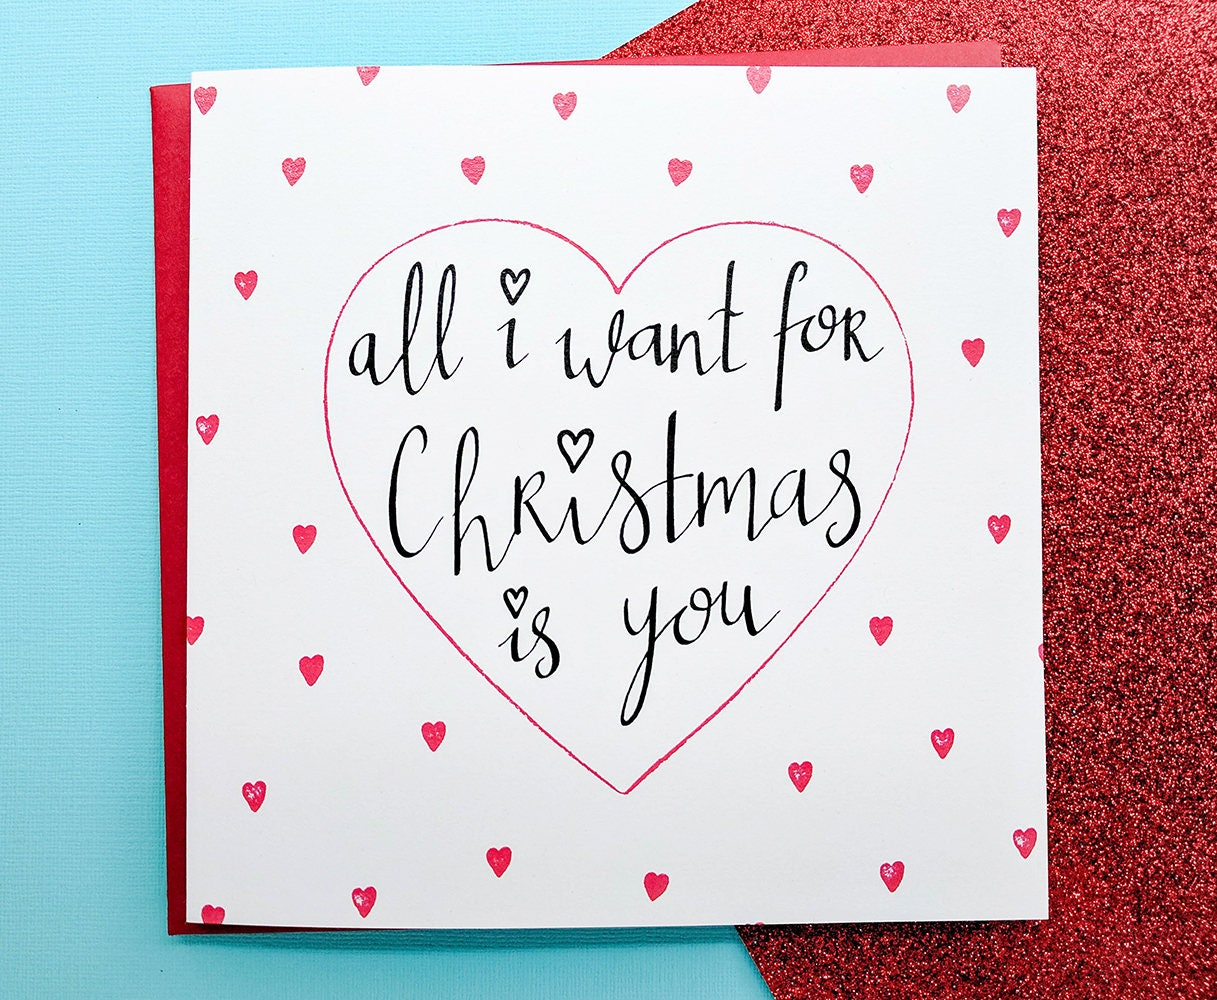 All i want for christmas card romantic girlfriend christmas card all i want for christmas card romantic girlfriend christmas cardboyfriend christmas card kristyandbryce Image collections